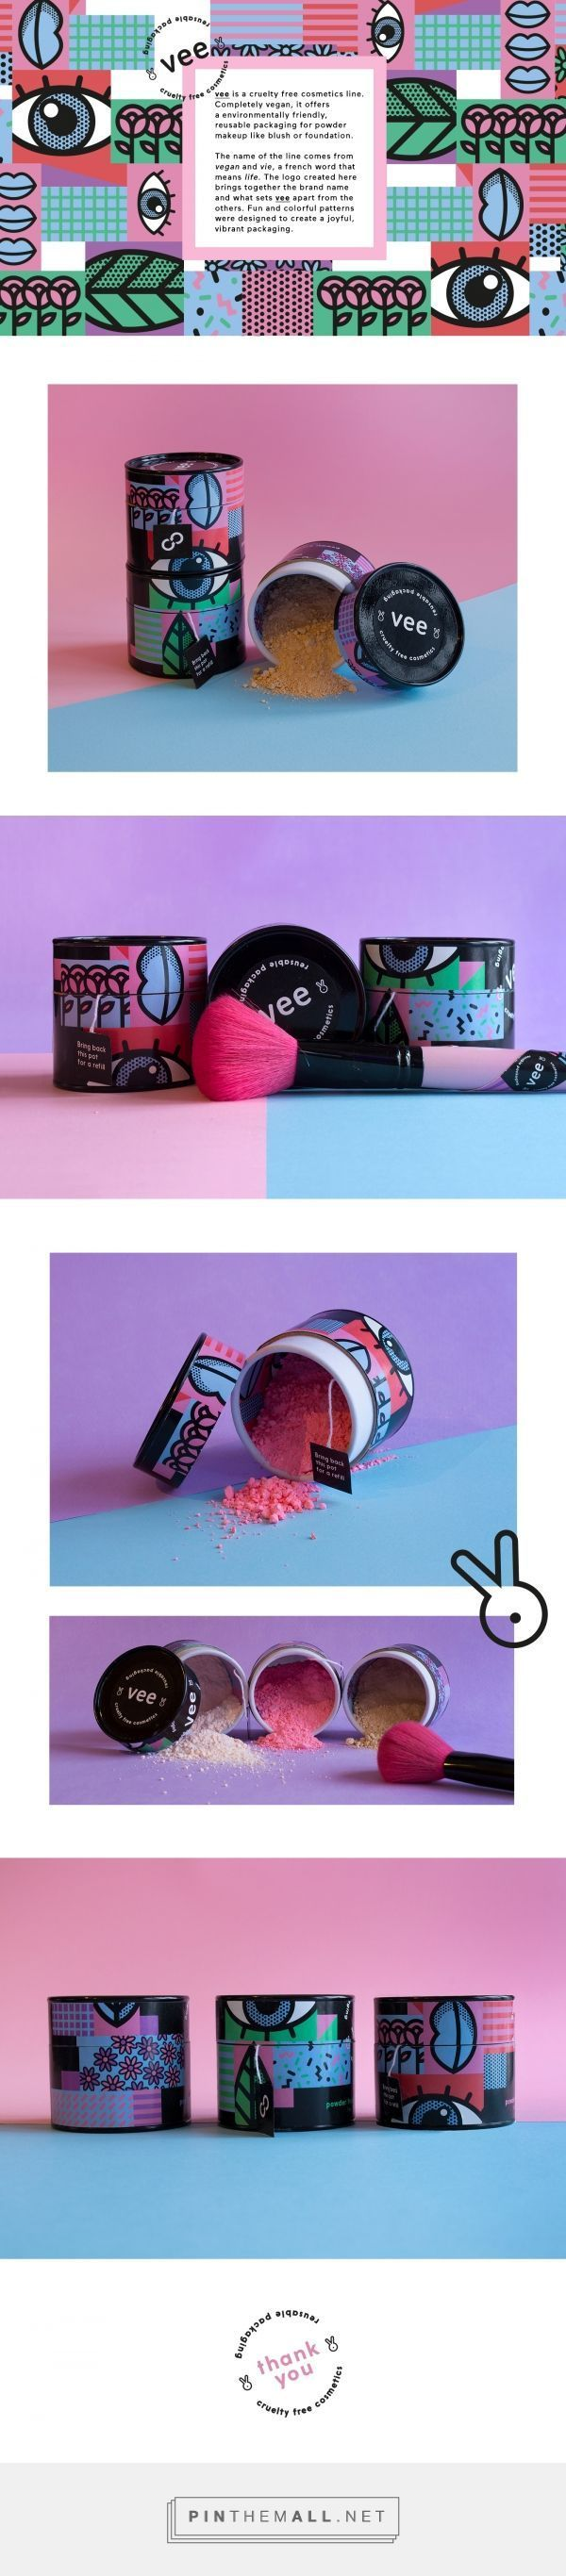 Vee Cosmetics Packaging by Camille Charbonneau| Fivestar Branding Agency – Design and Branding Agency & Curated Inspiration Gallery